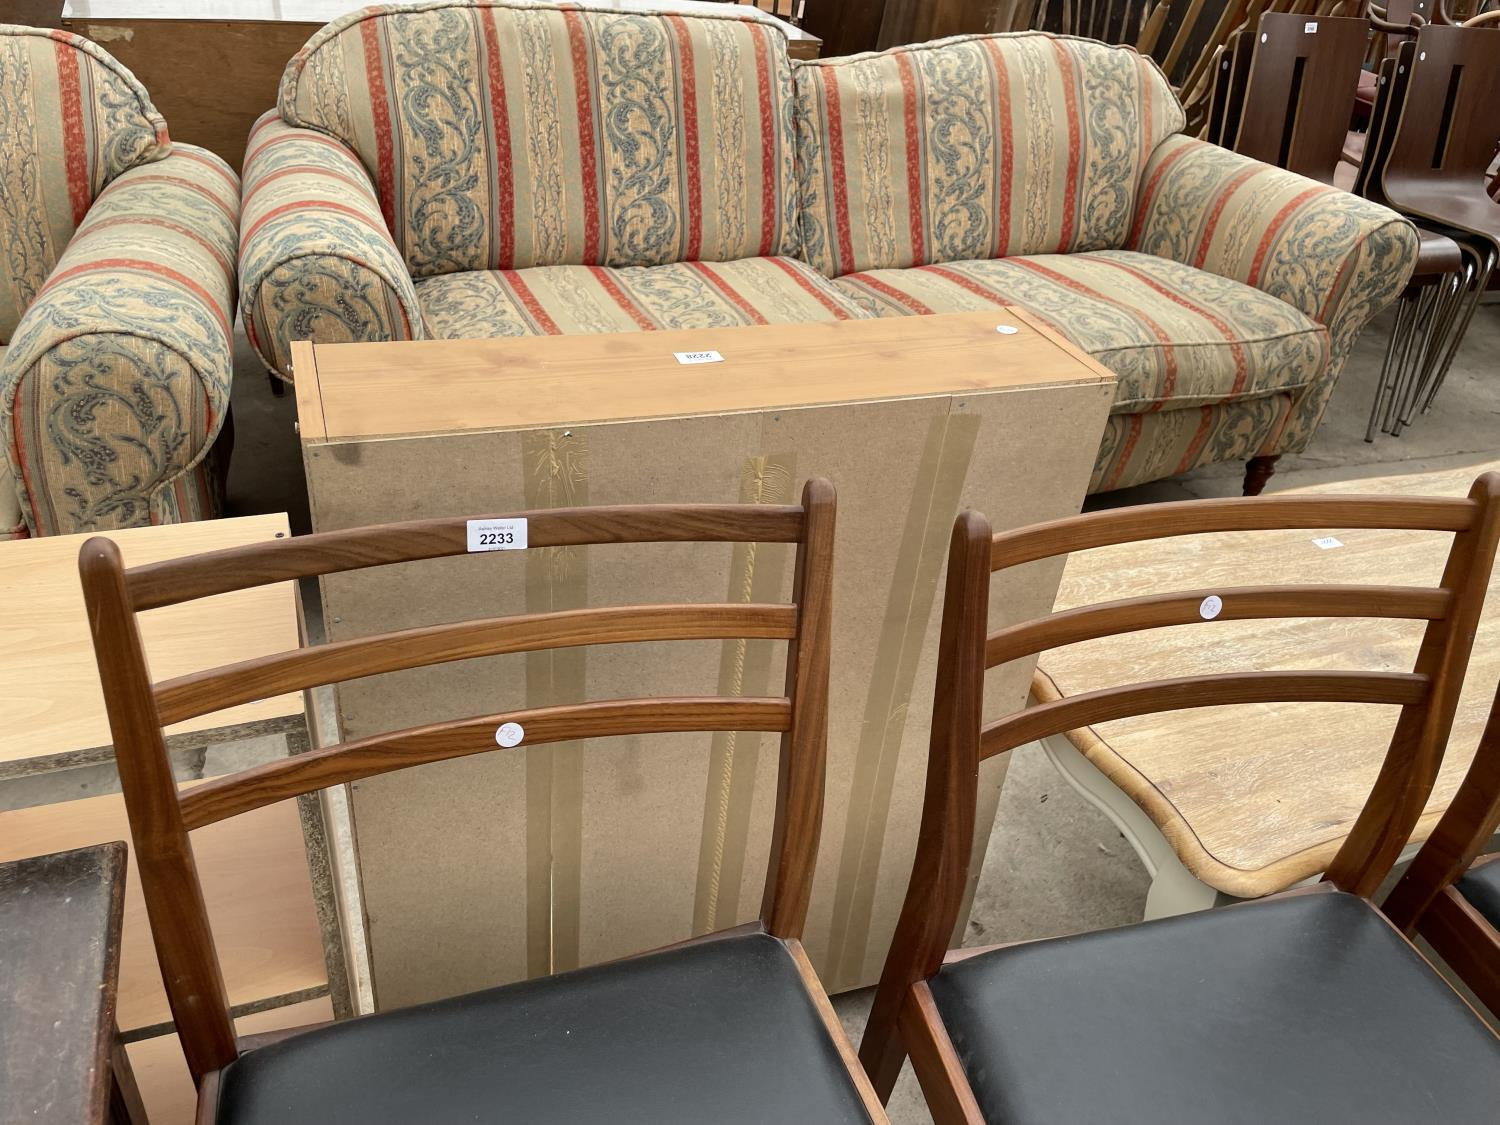 A SET OF FOUR RETRO TEAK G-PLAN DINING CHAIRS - Image 2 of 6